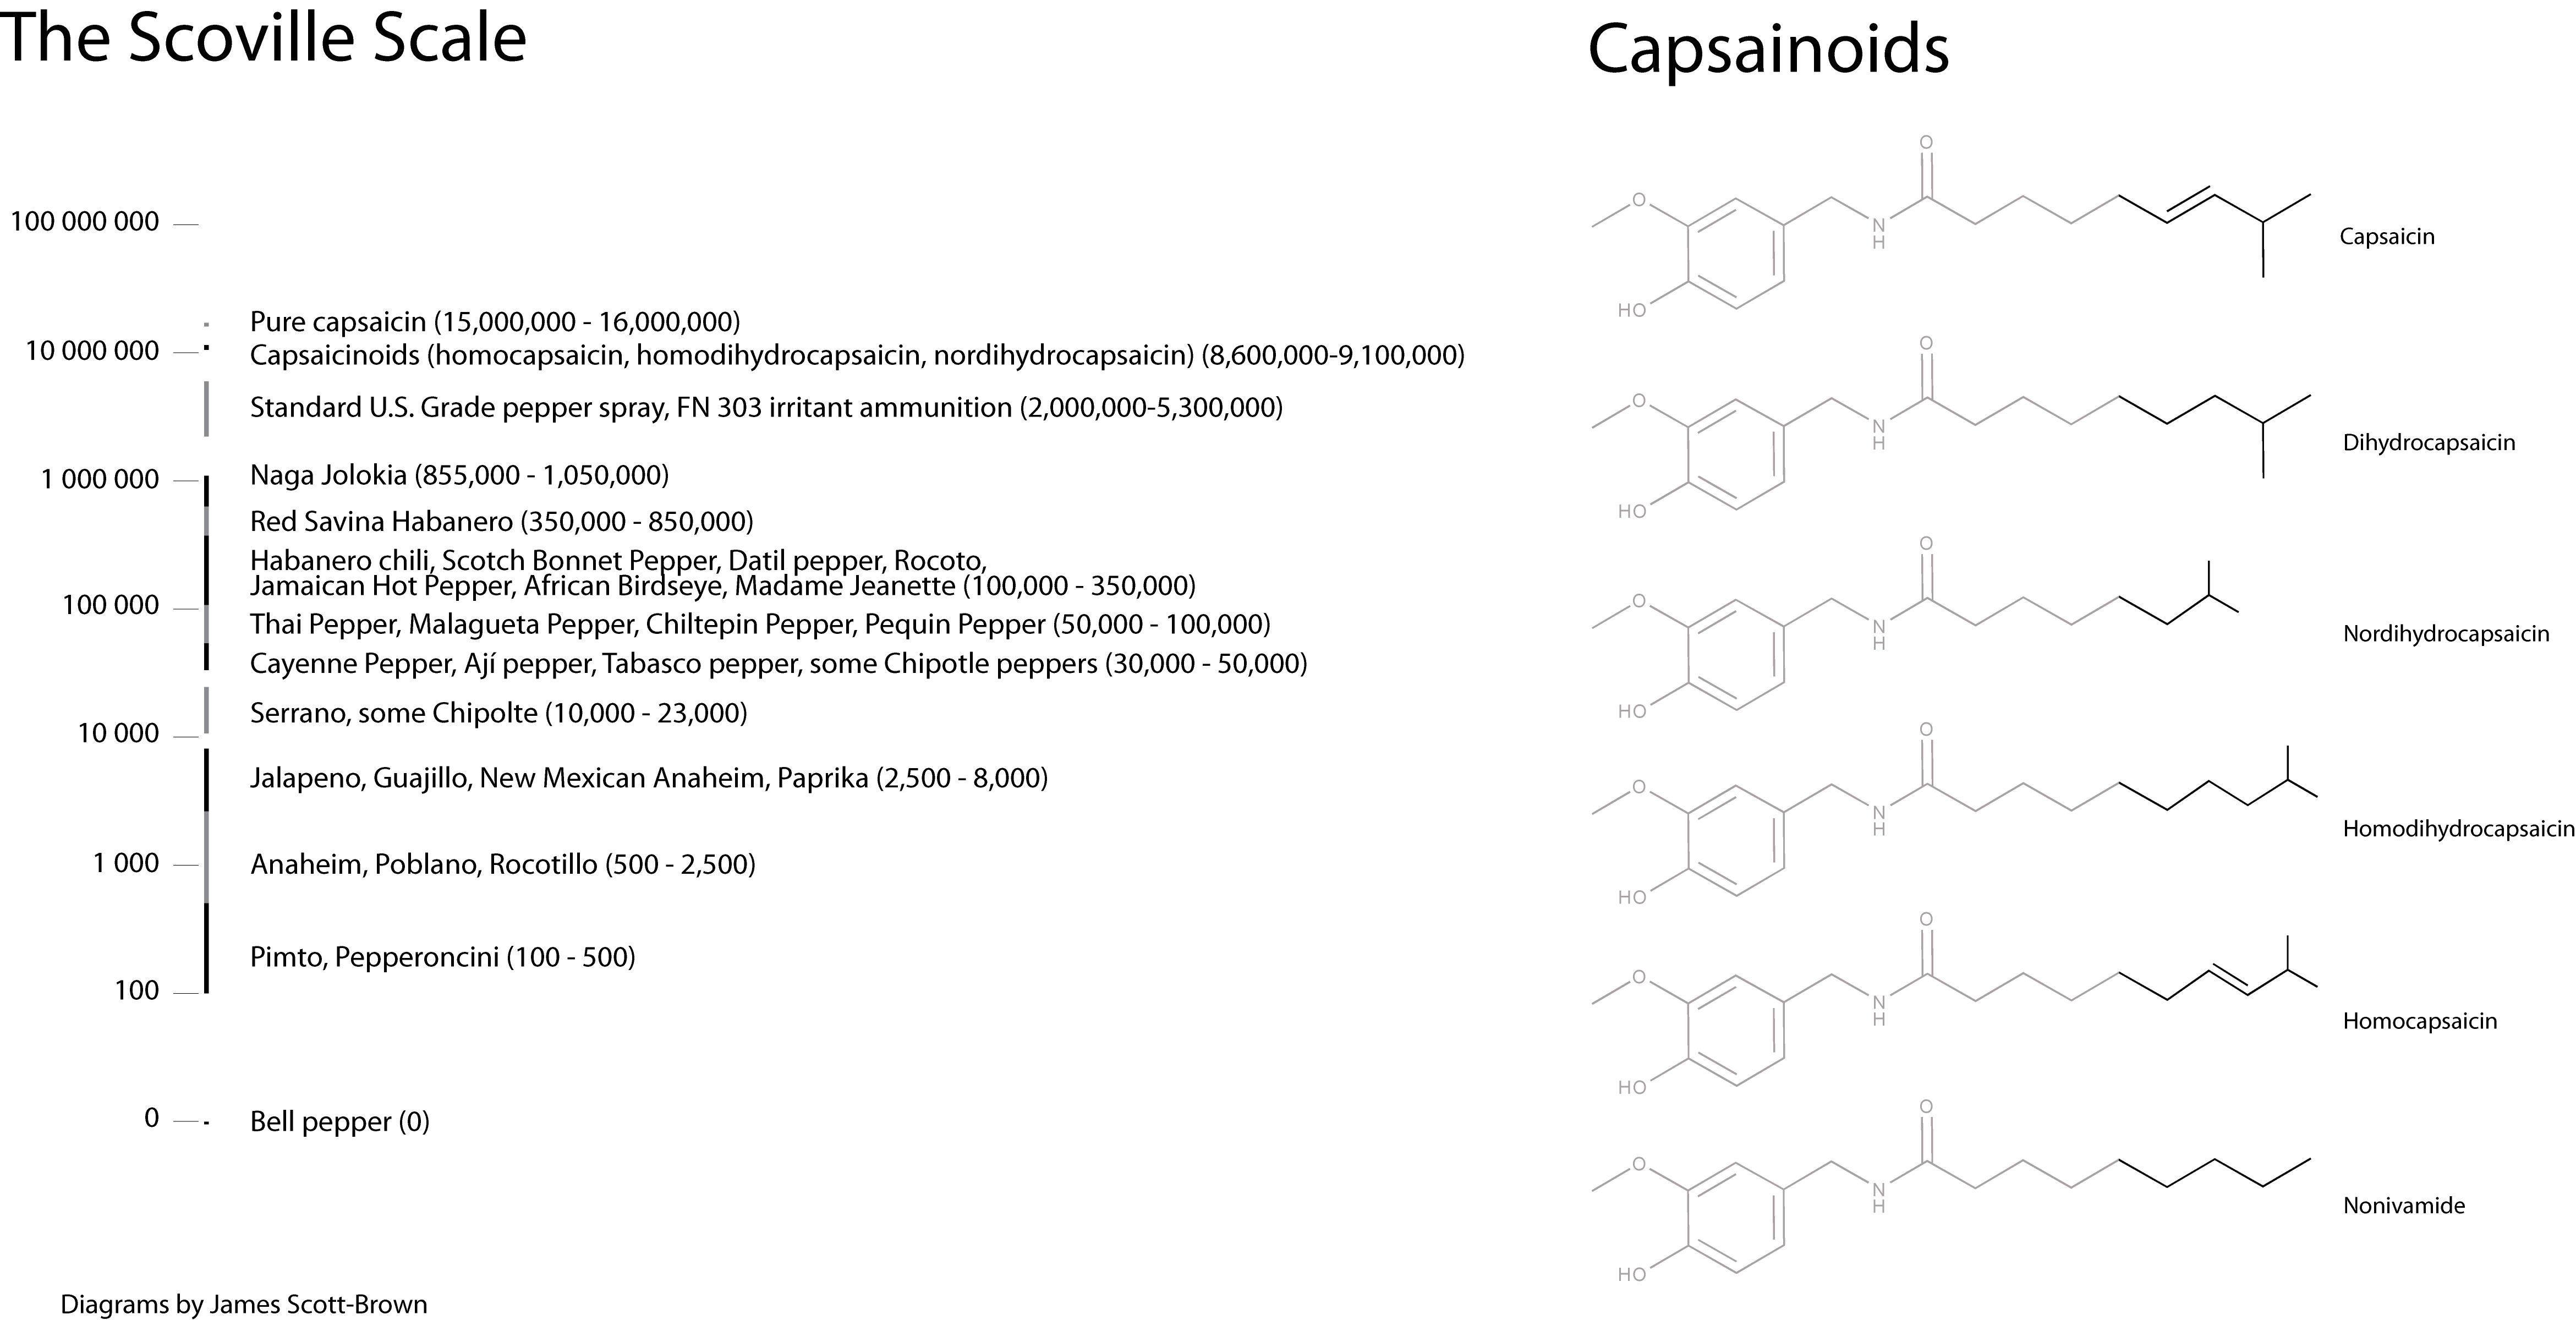 Capsainoids and the Scoville Scale